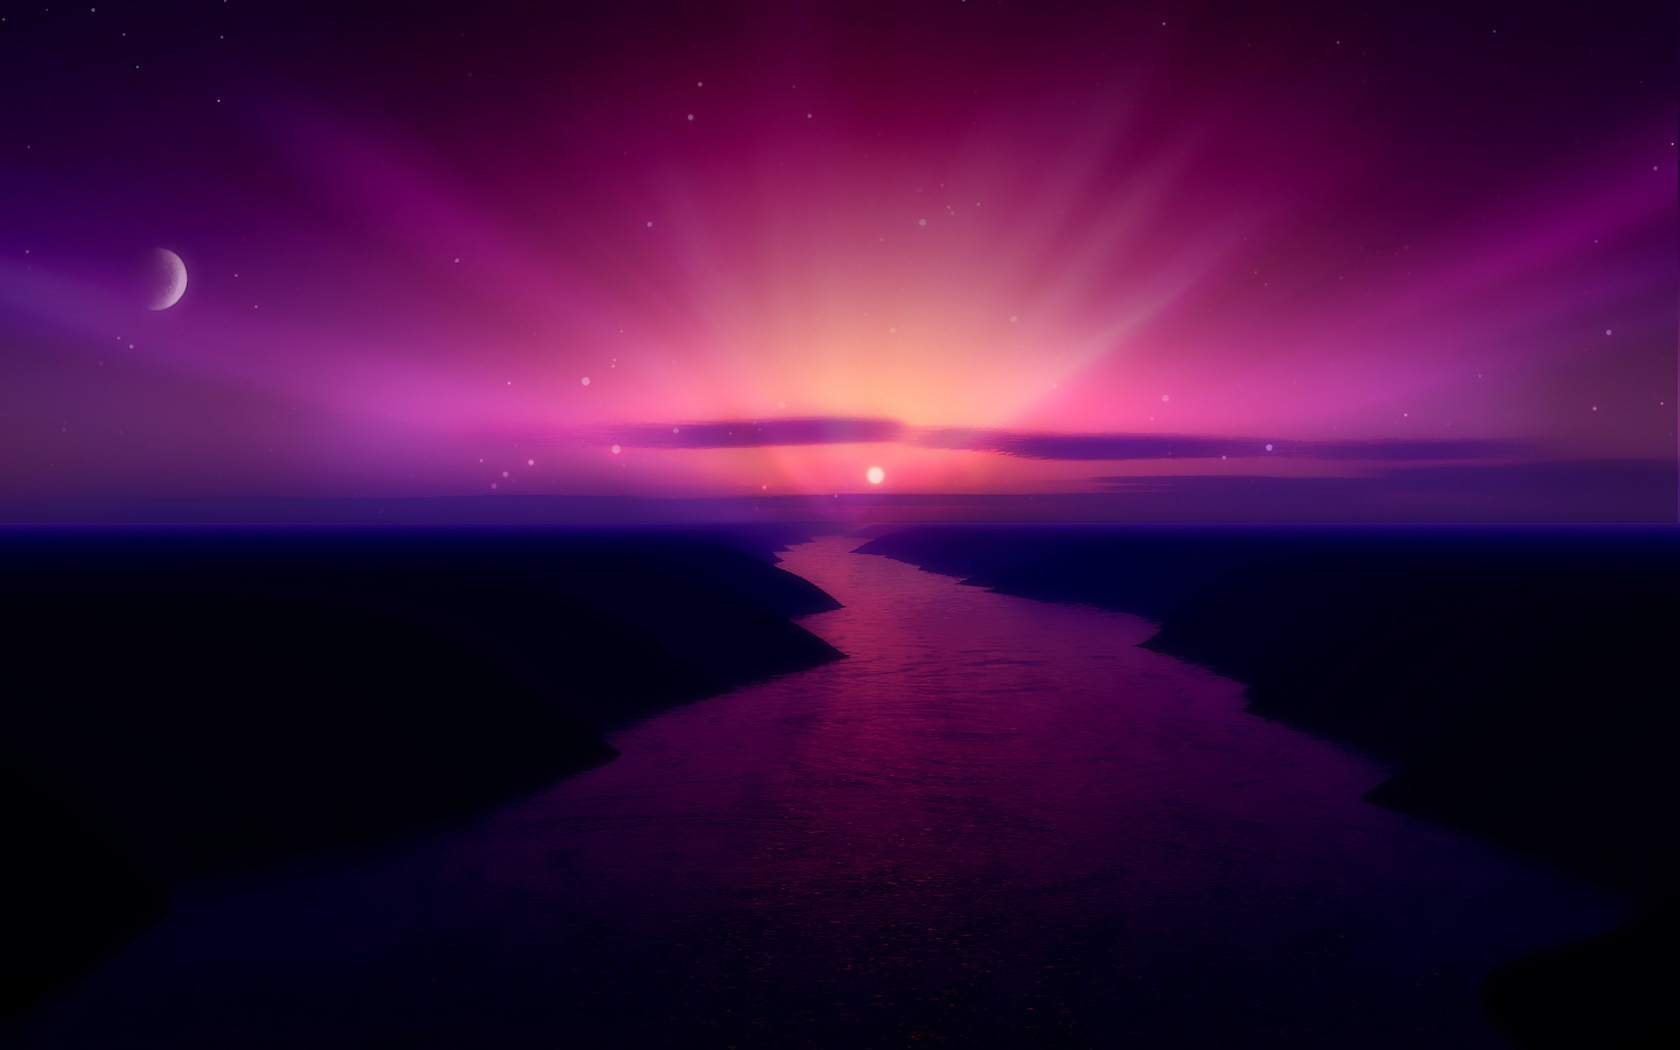 purple desktop background wallpaper   wwwwallpapers in hdcom 1680x1050